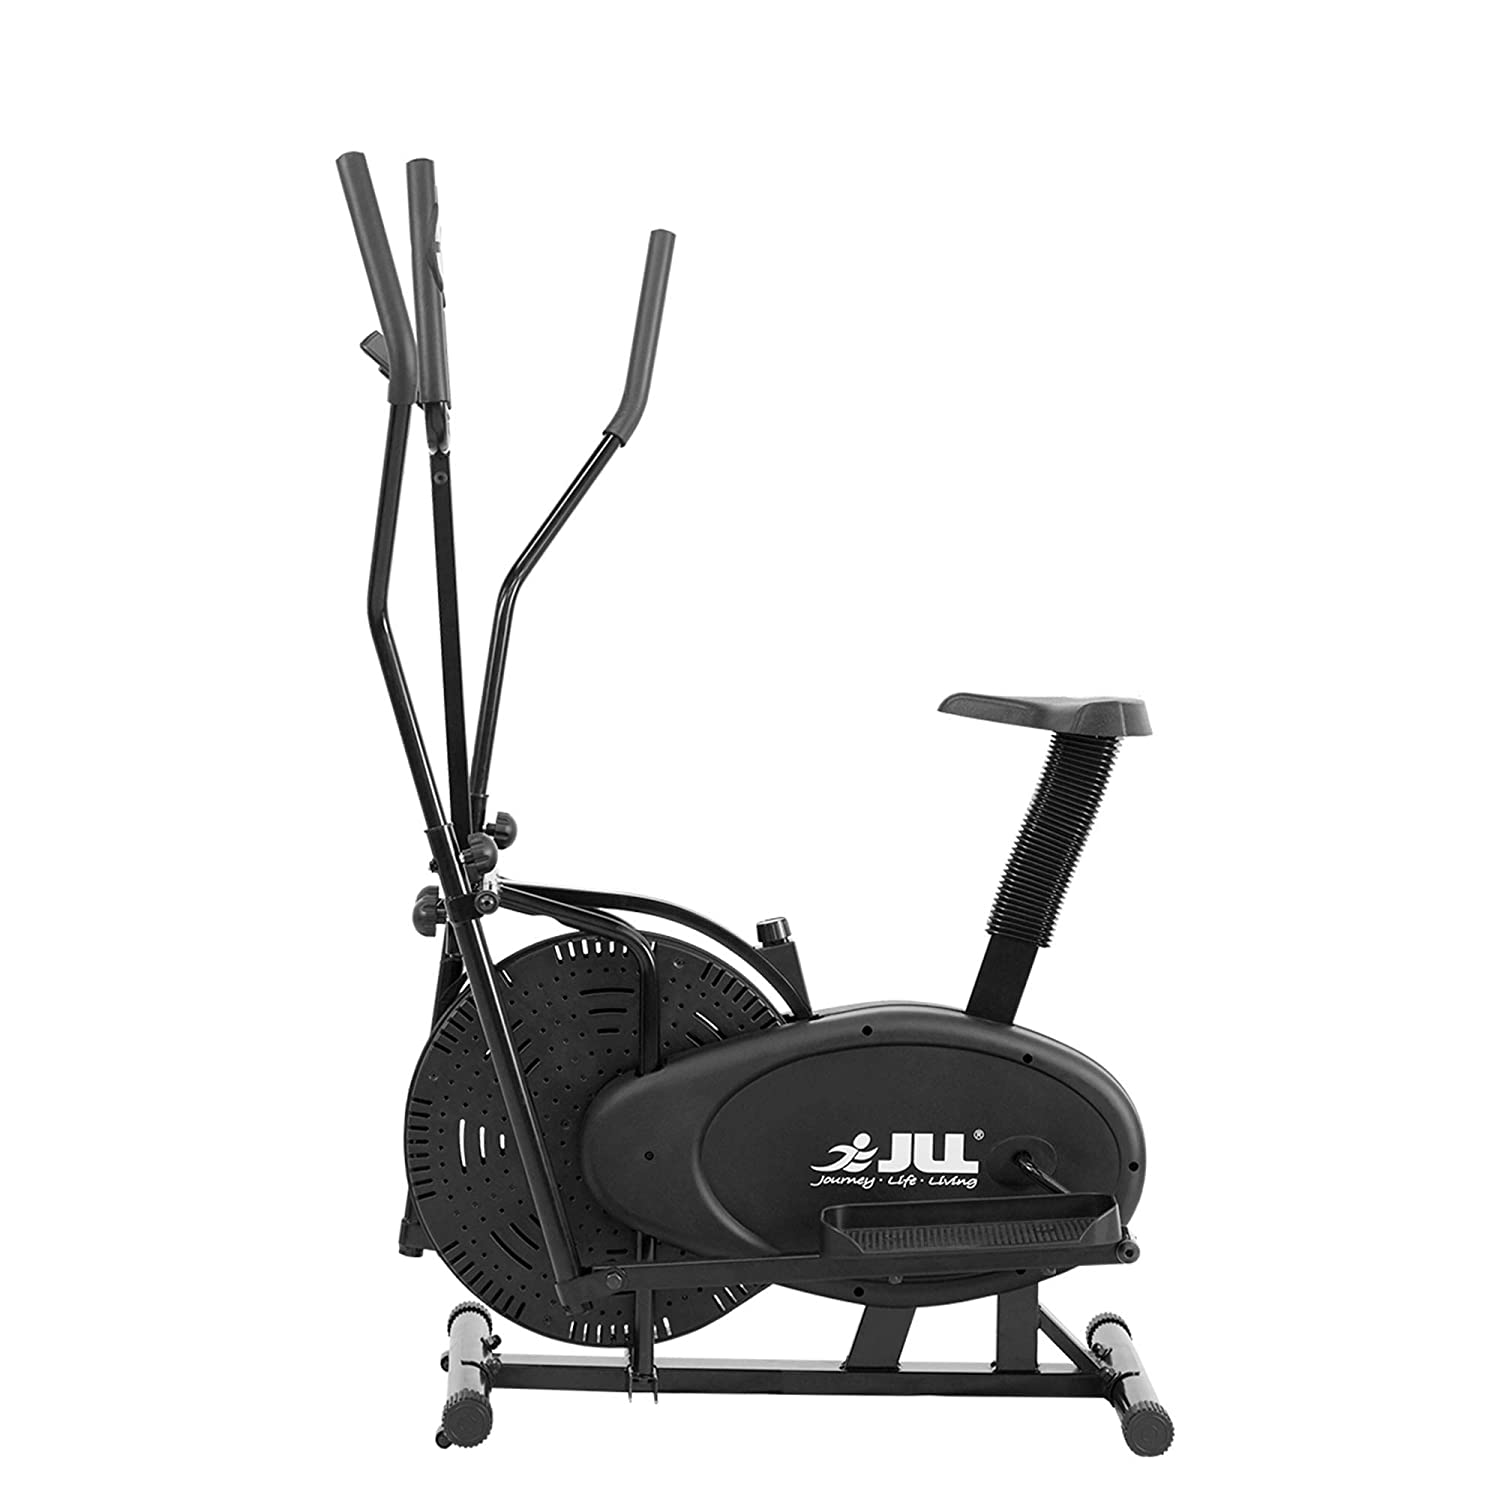 JLL 2-in-1 Elliptical Cross Trainer Exercise Bike CT100, Fitness Cardio  Workout Machine-With Seat + Pulse Heart Rate Sensors, Console Display,  5-level